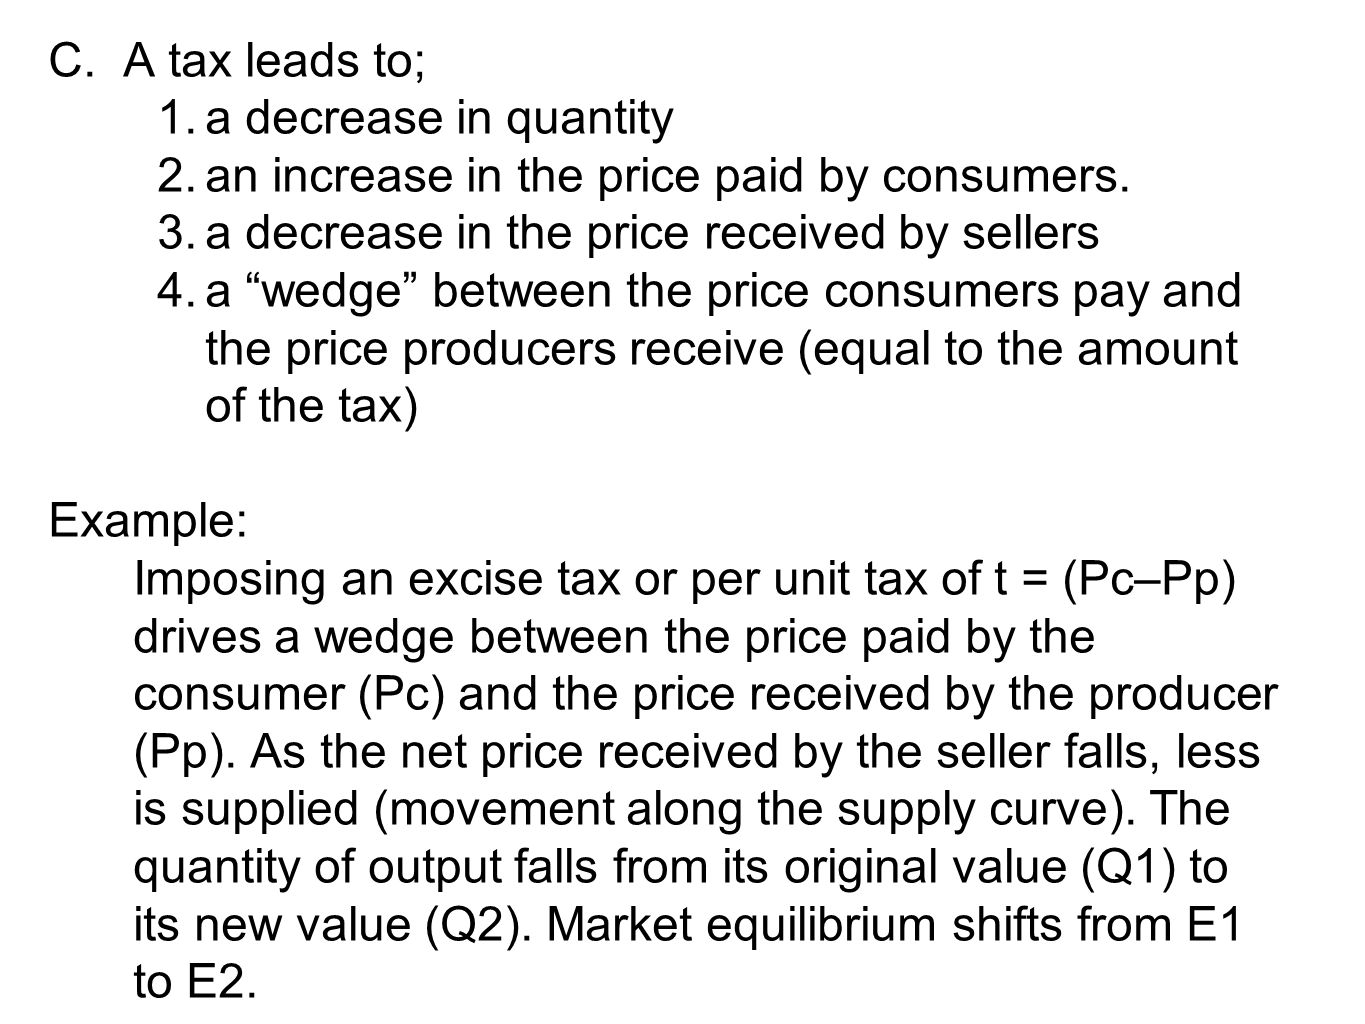 C. A tax leads to; a decrease in quantity. an increase in the price paid by consumers. a decrease in the price received by sellers.